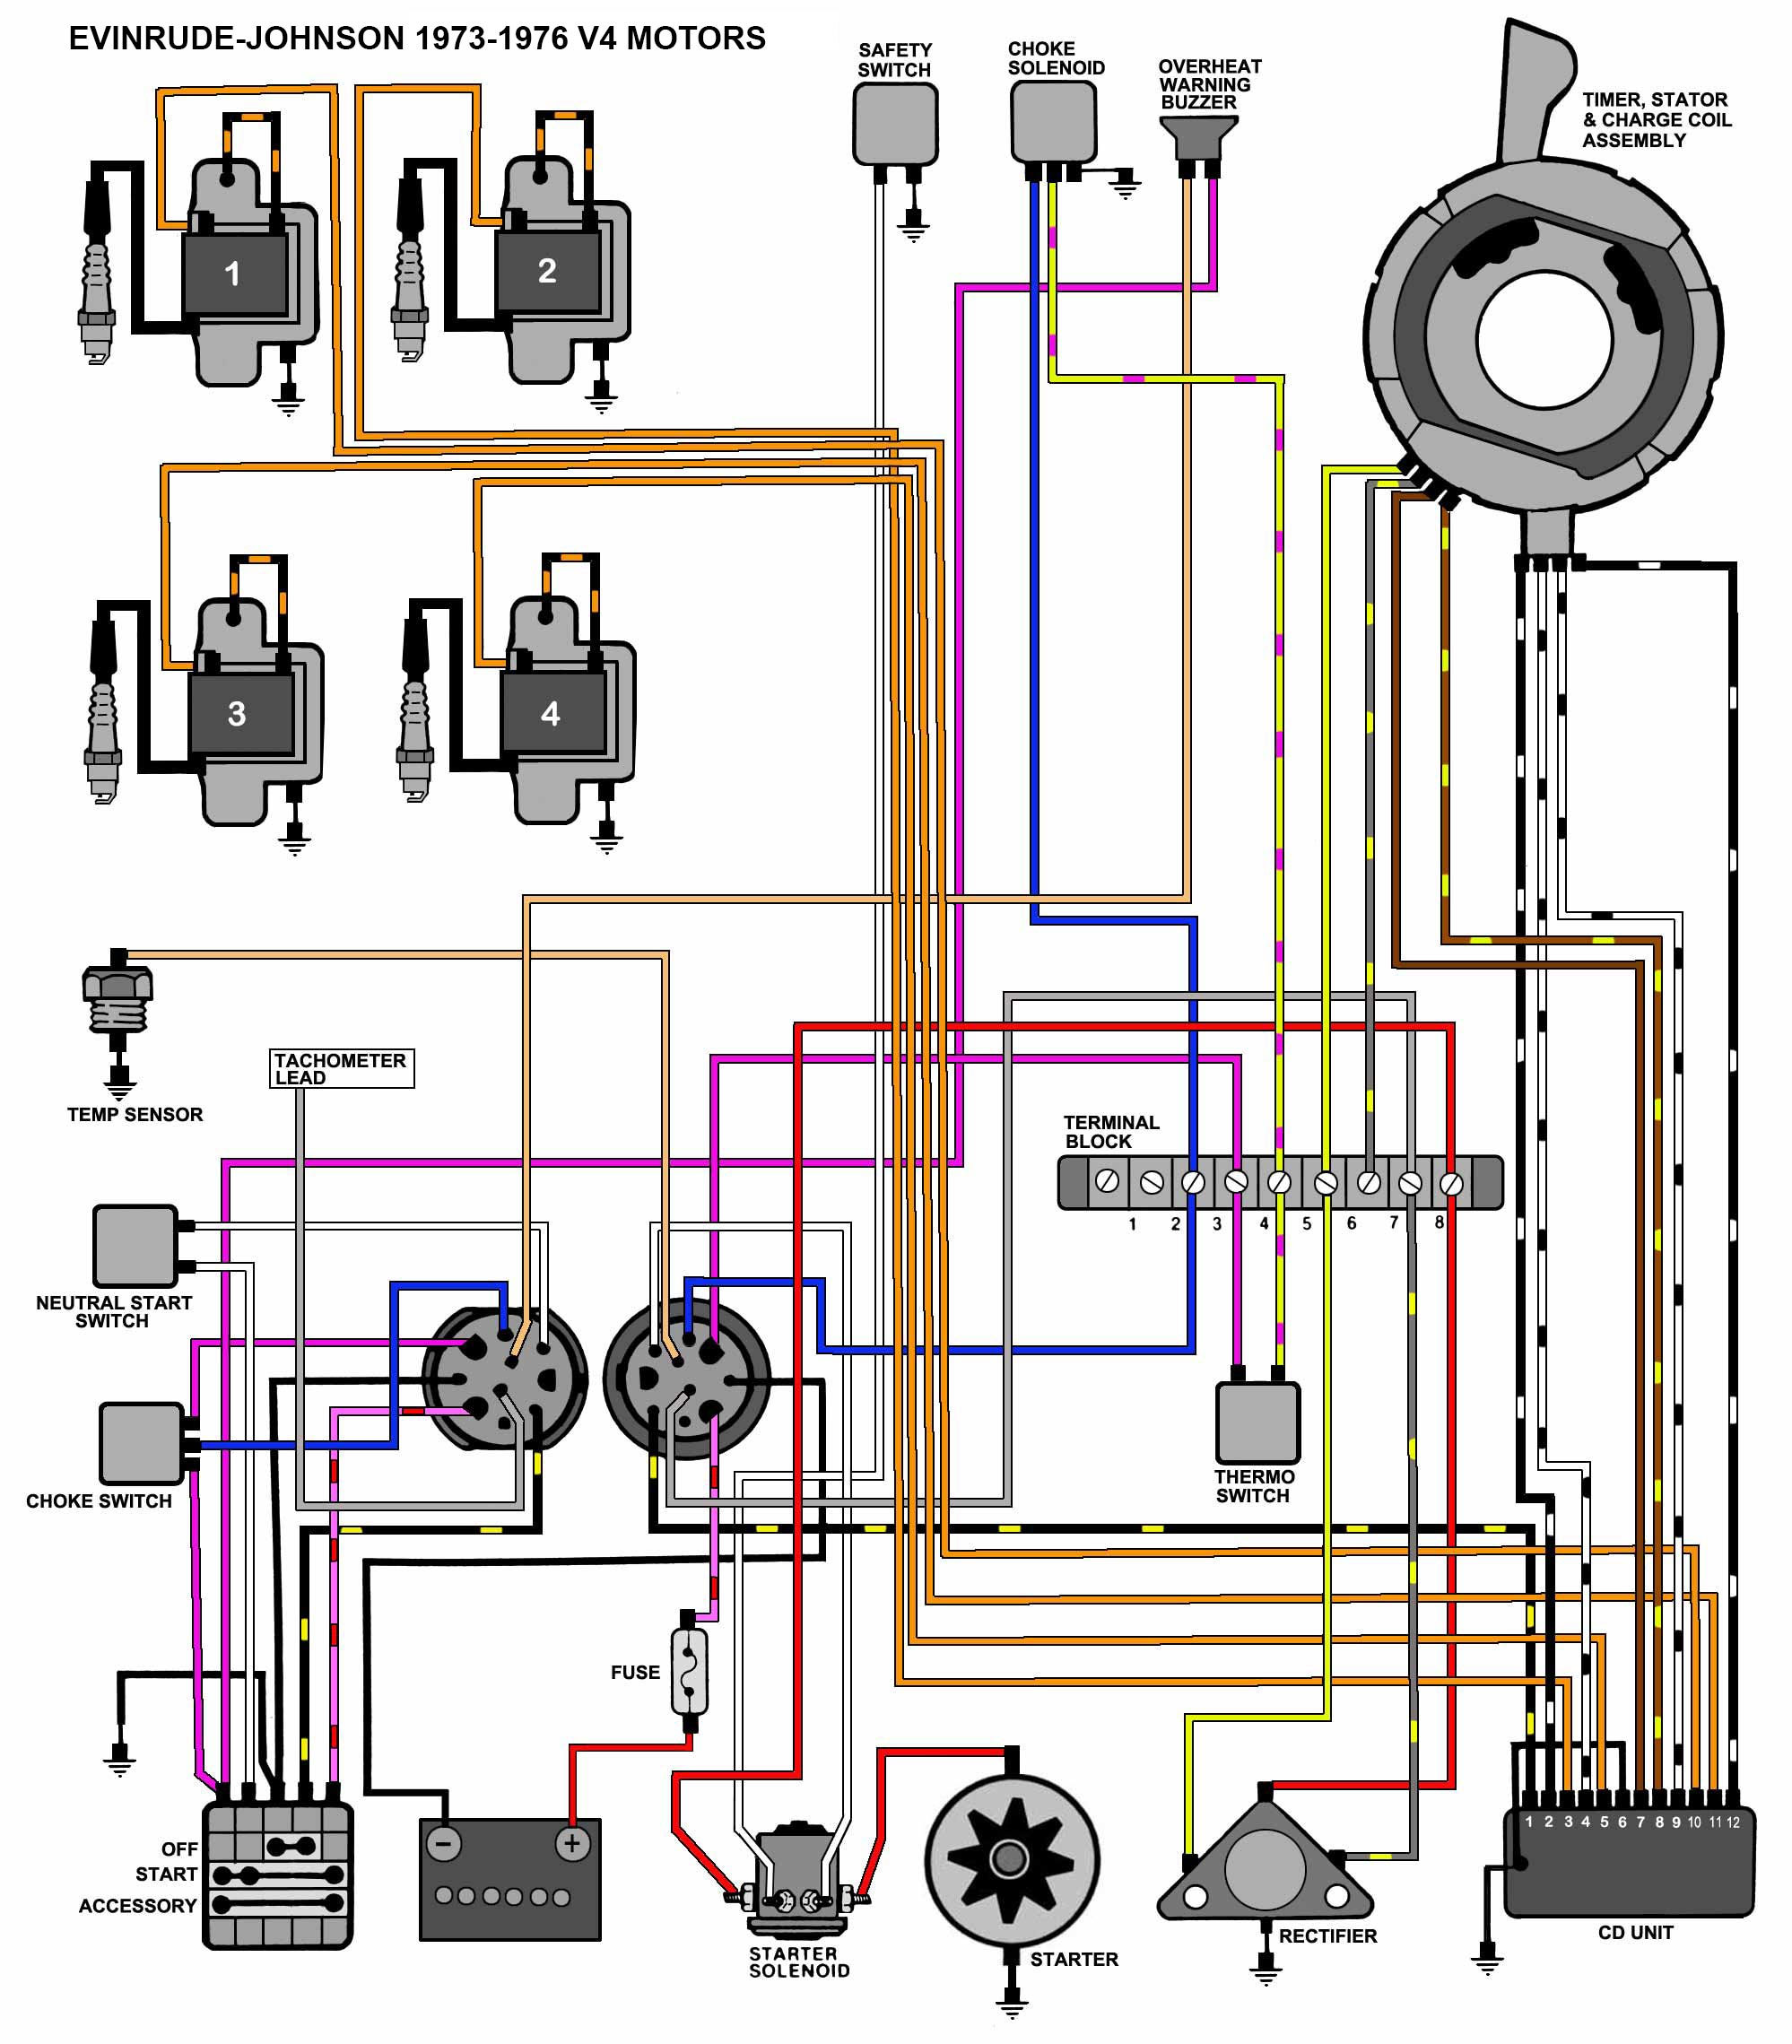 48 johnson outboard motor diagram explained wiring diagrams rh sbsun co